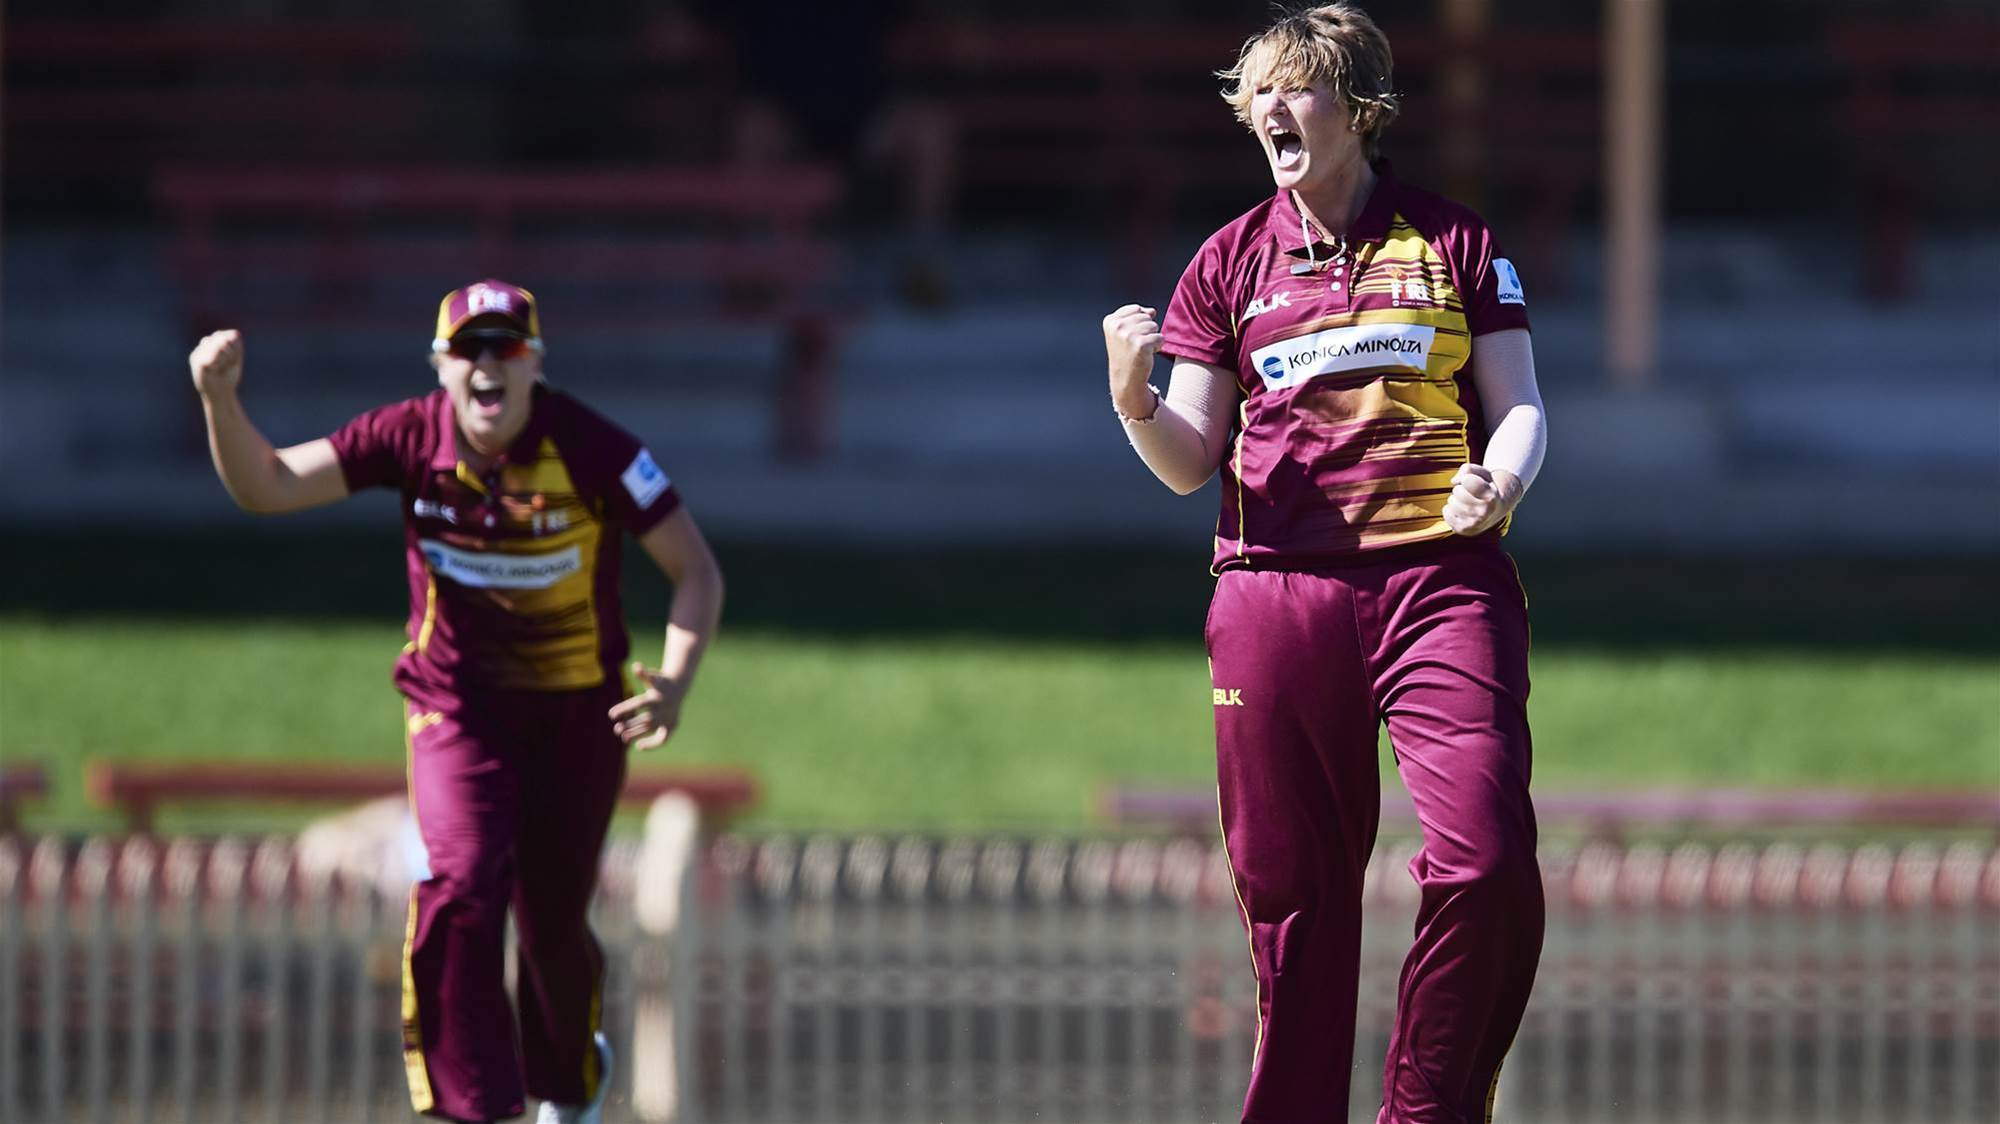 Sammy-Jo: I don't just want to be a bowler